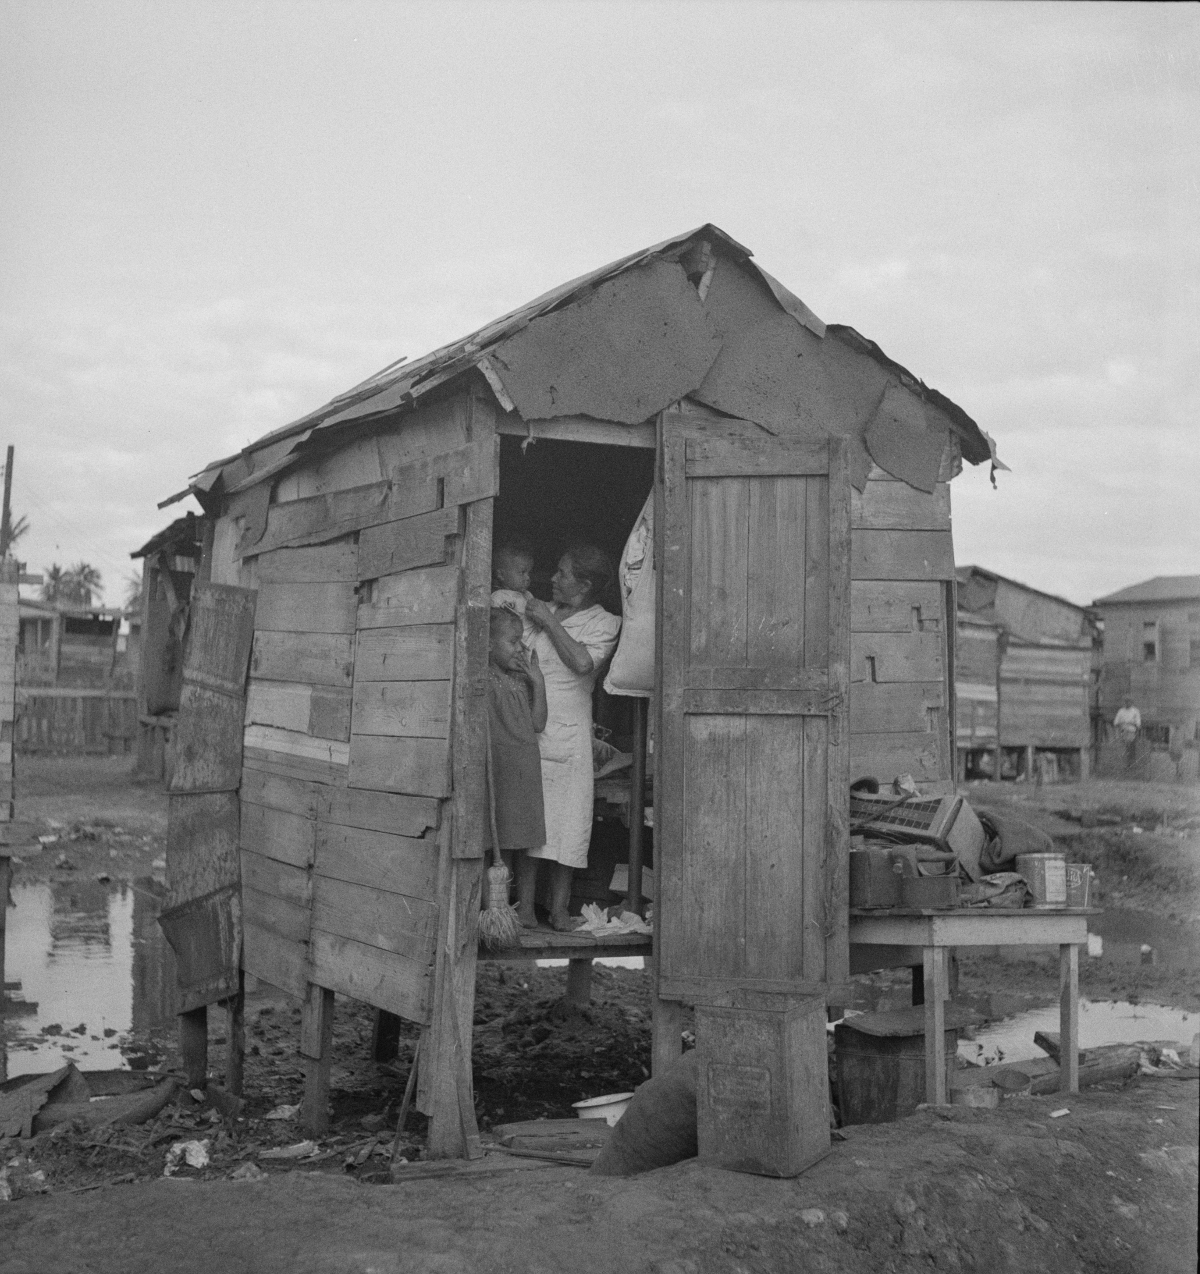 19 Pictures Of San Juans Mud Slum El Fanguito Knowol